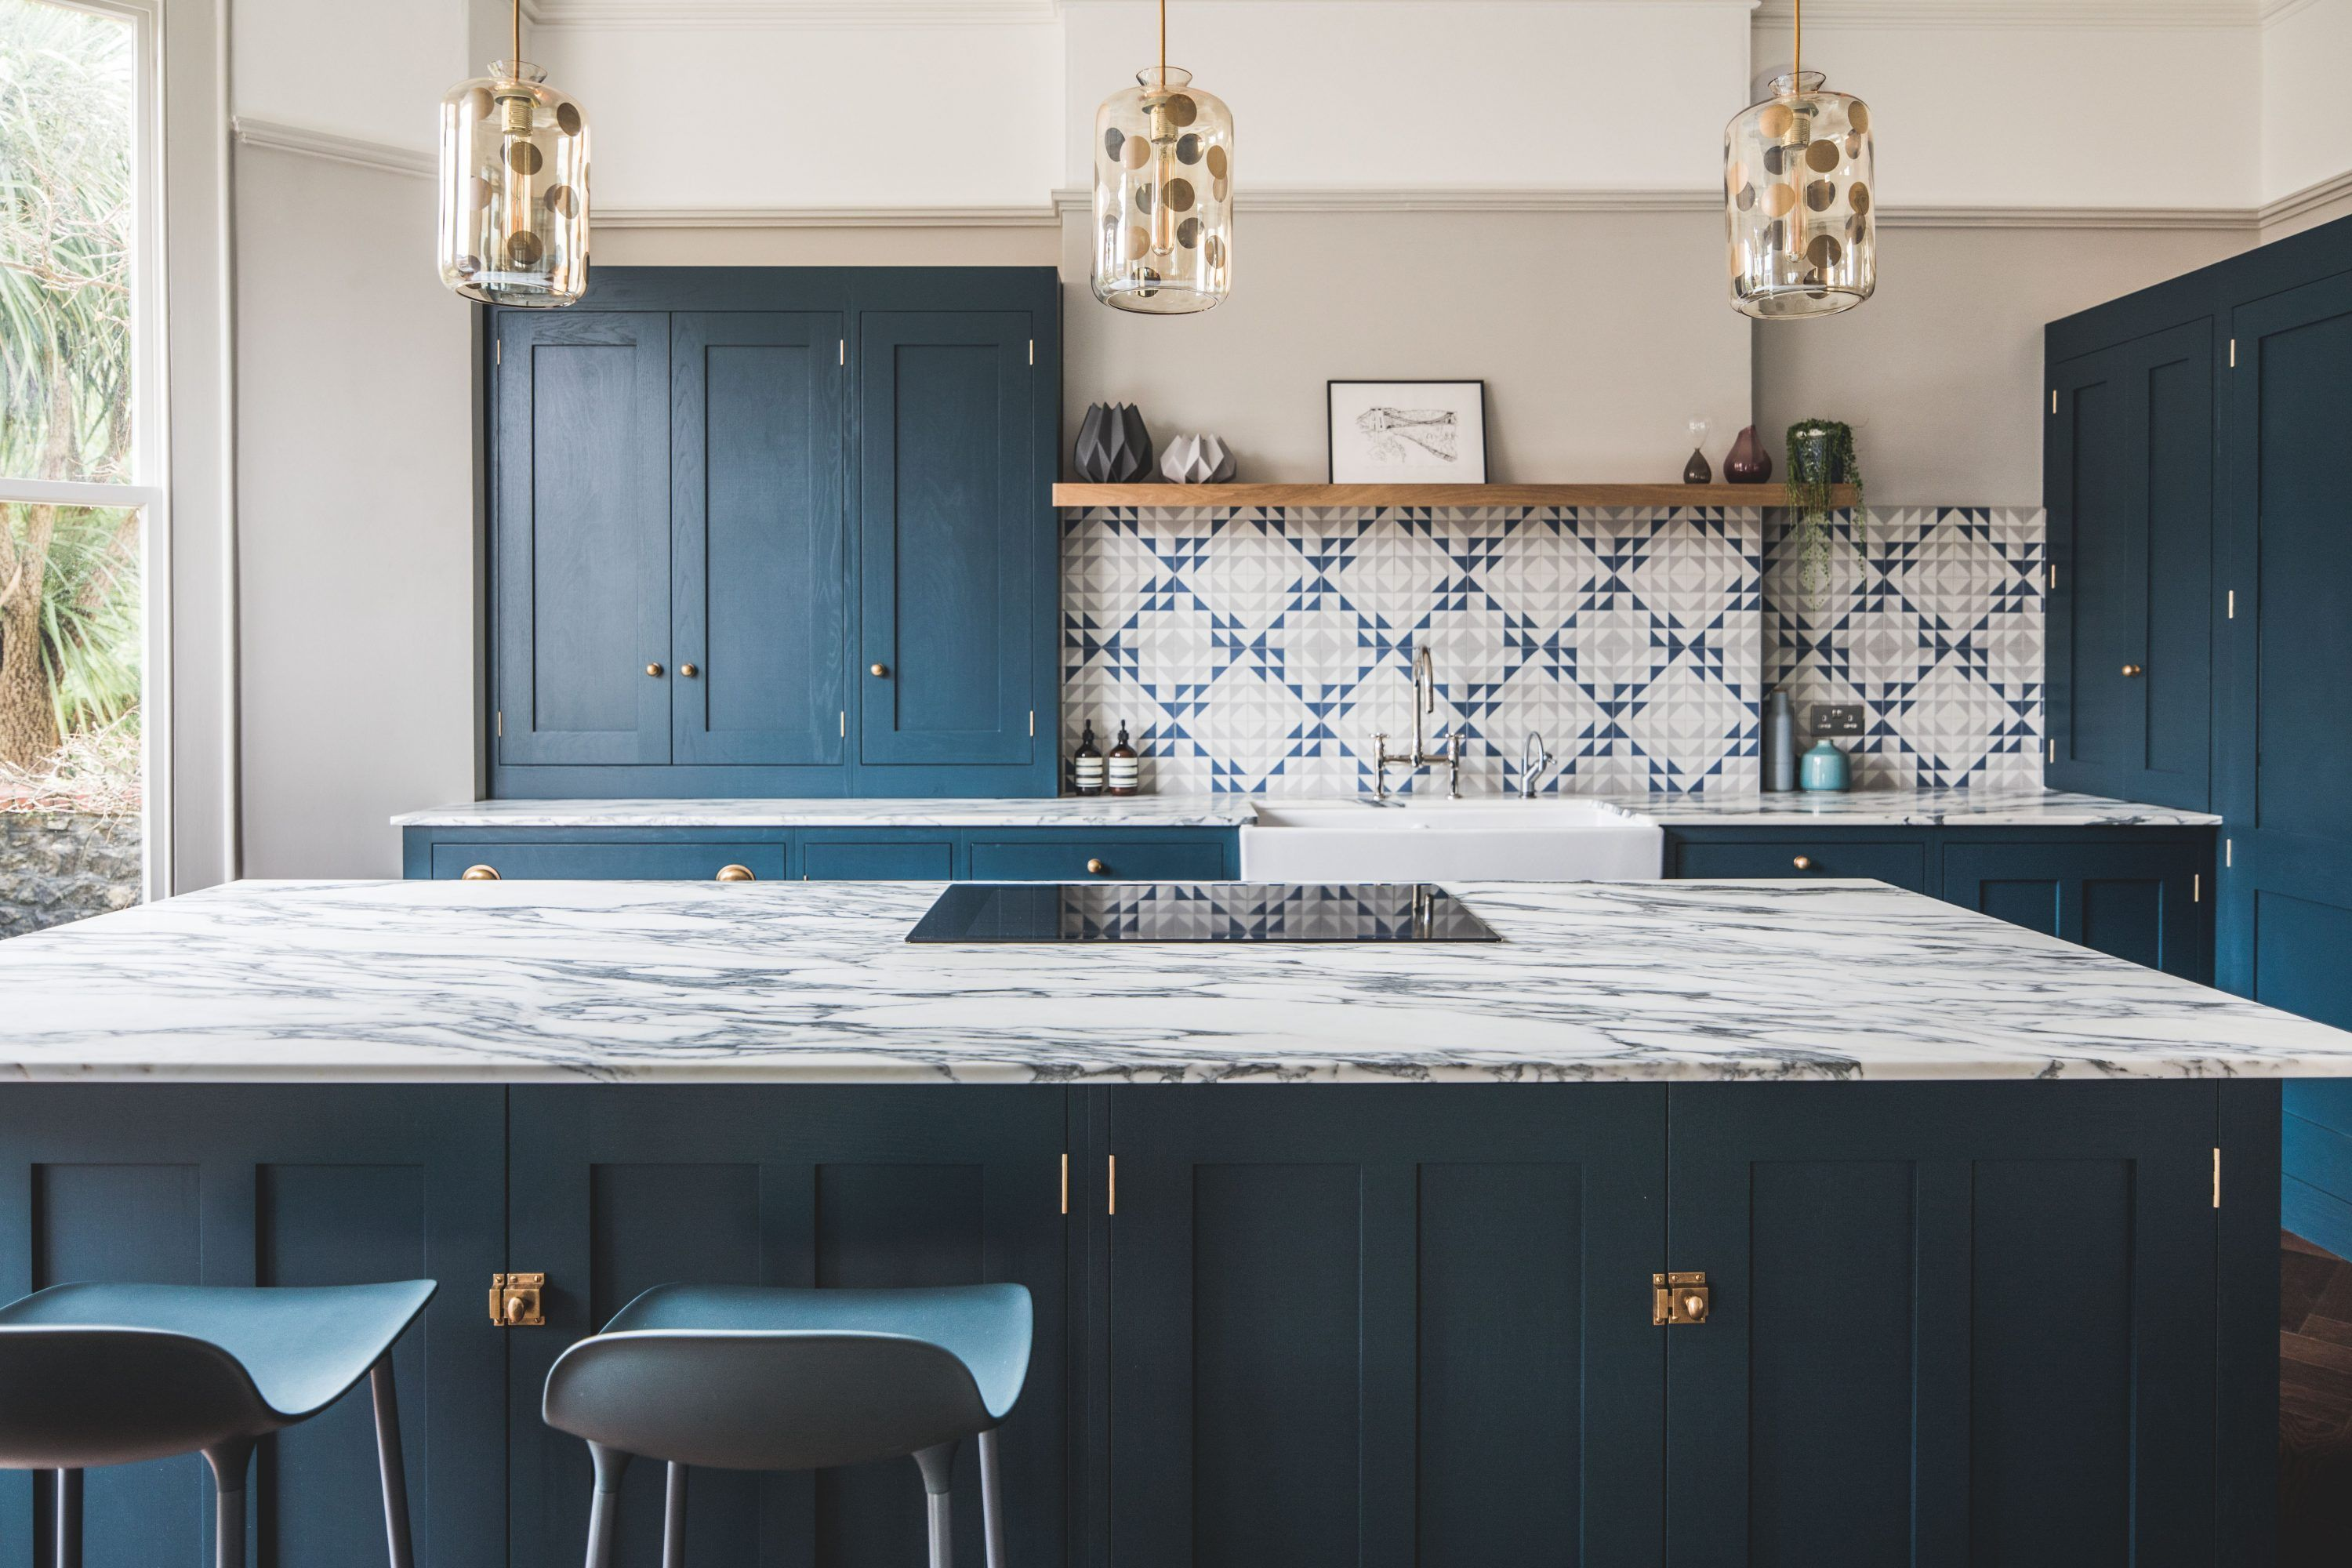 shaker kitchen cabinets painted in farrow & ball hague blue with